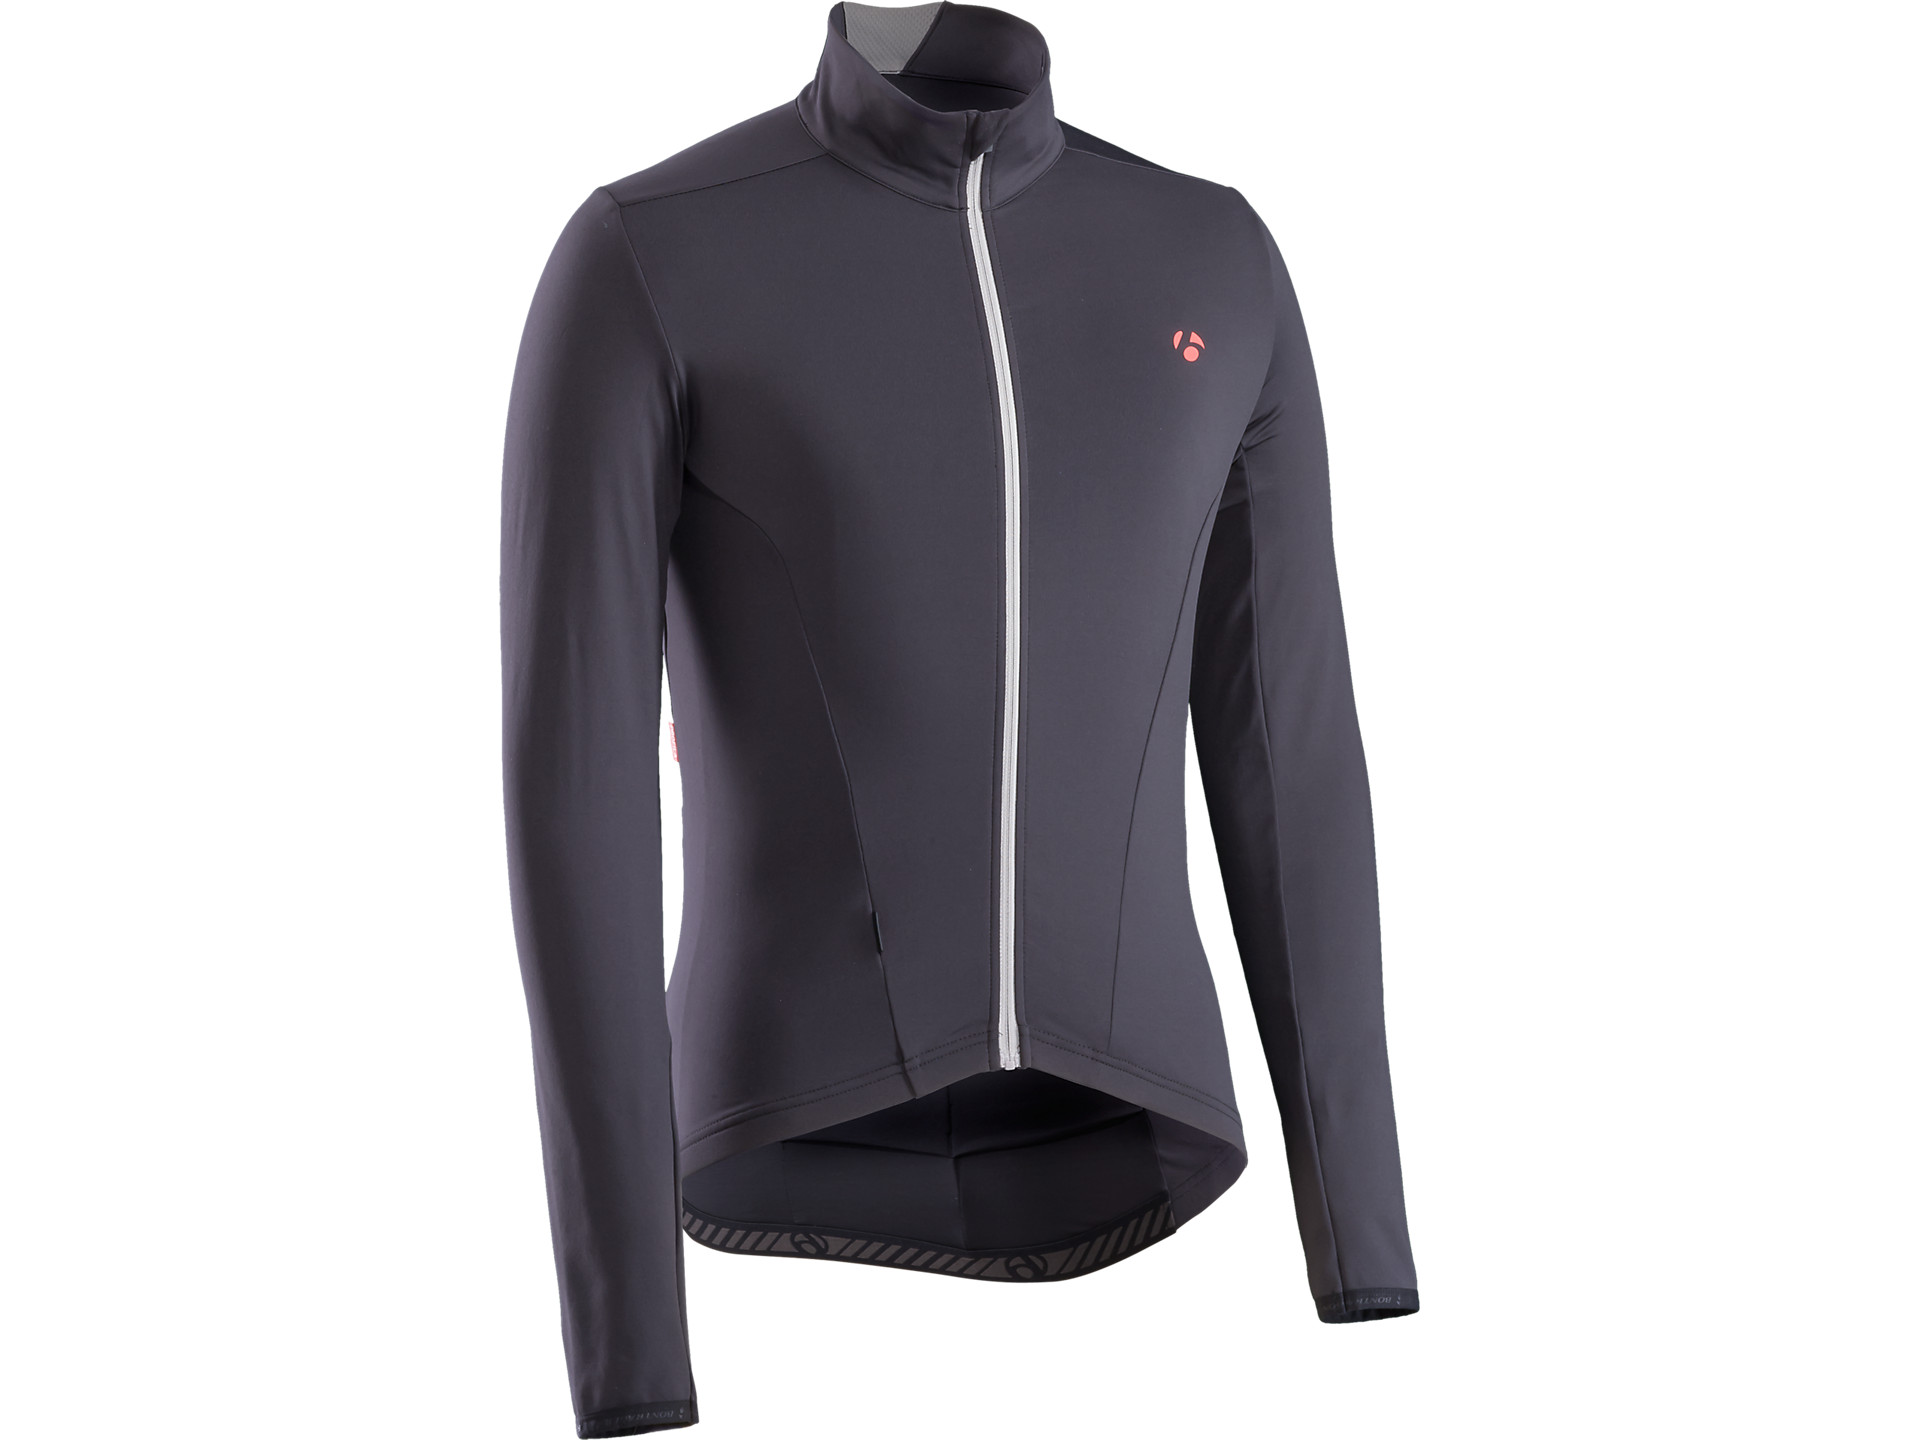 335f1d22a Bontrager RXL Thermal Long Sleeve Cycling Jersey